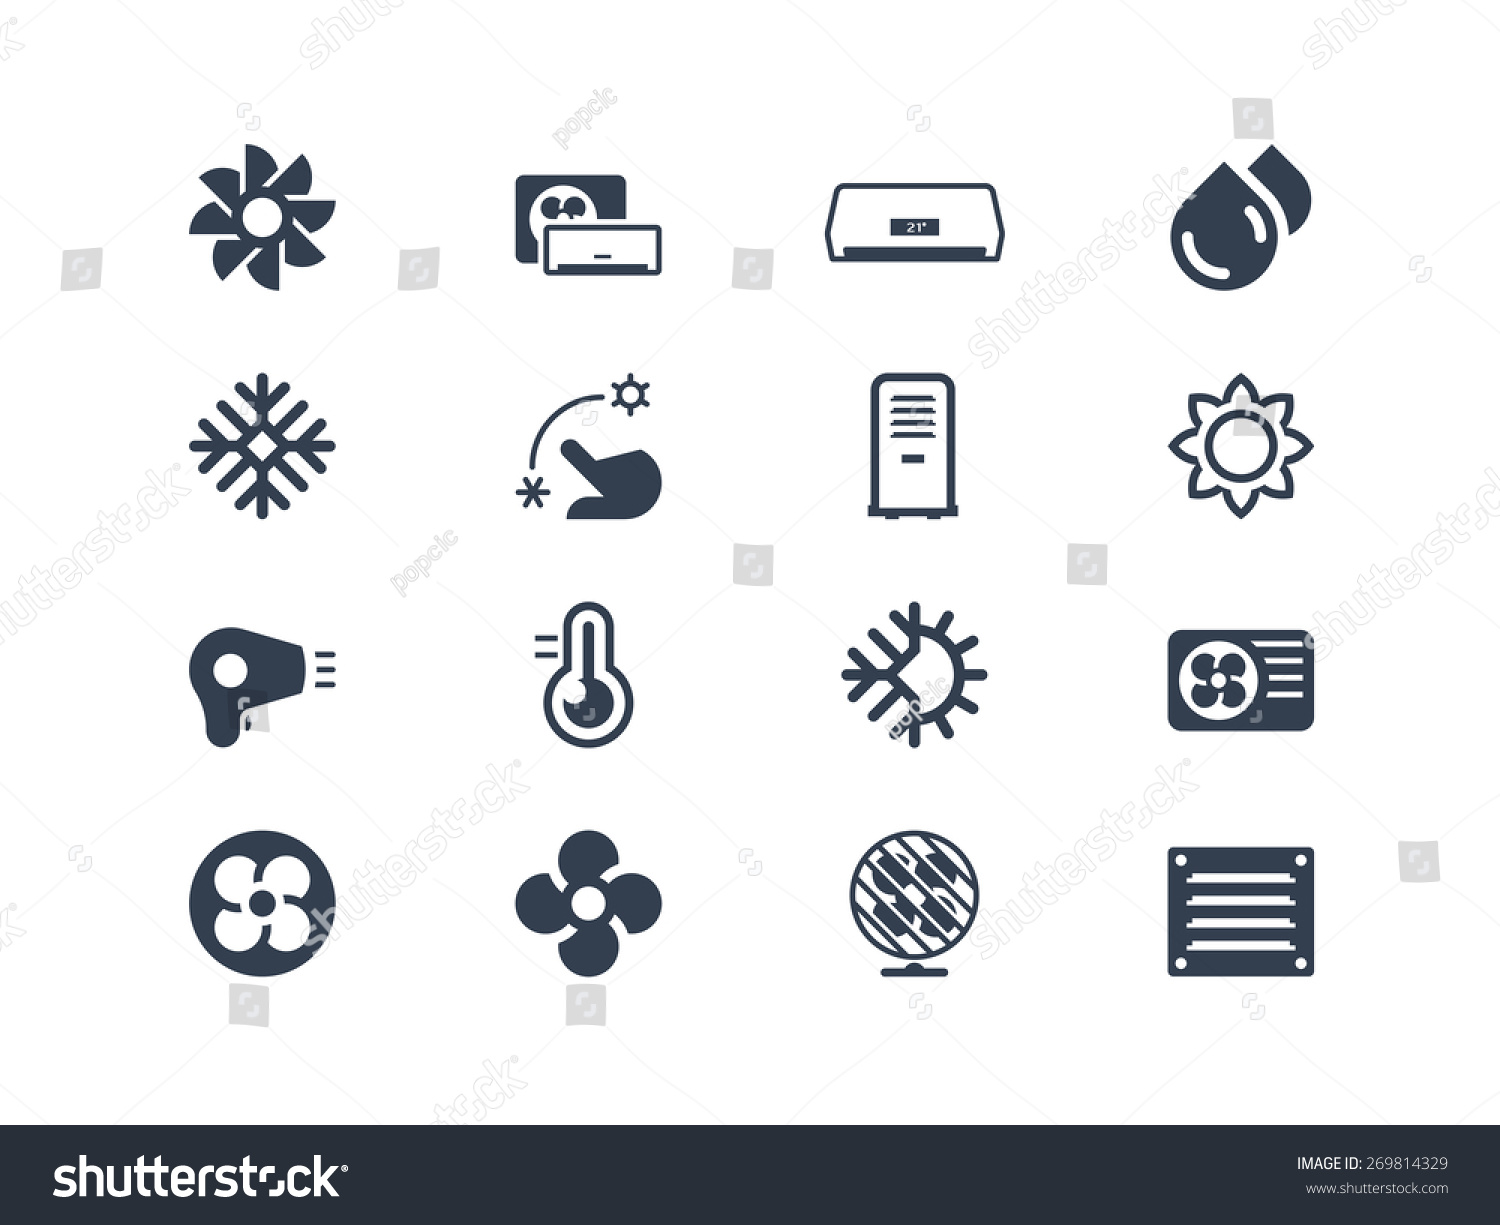 Snowflake Icon Blinking On Thermostat No Ac The Wars Or Heating Air Conditioning 1f78 Nonprogrammable Contents Download